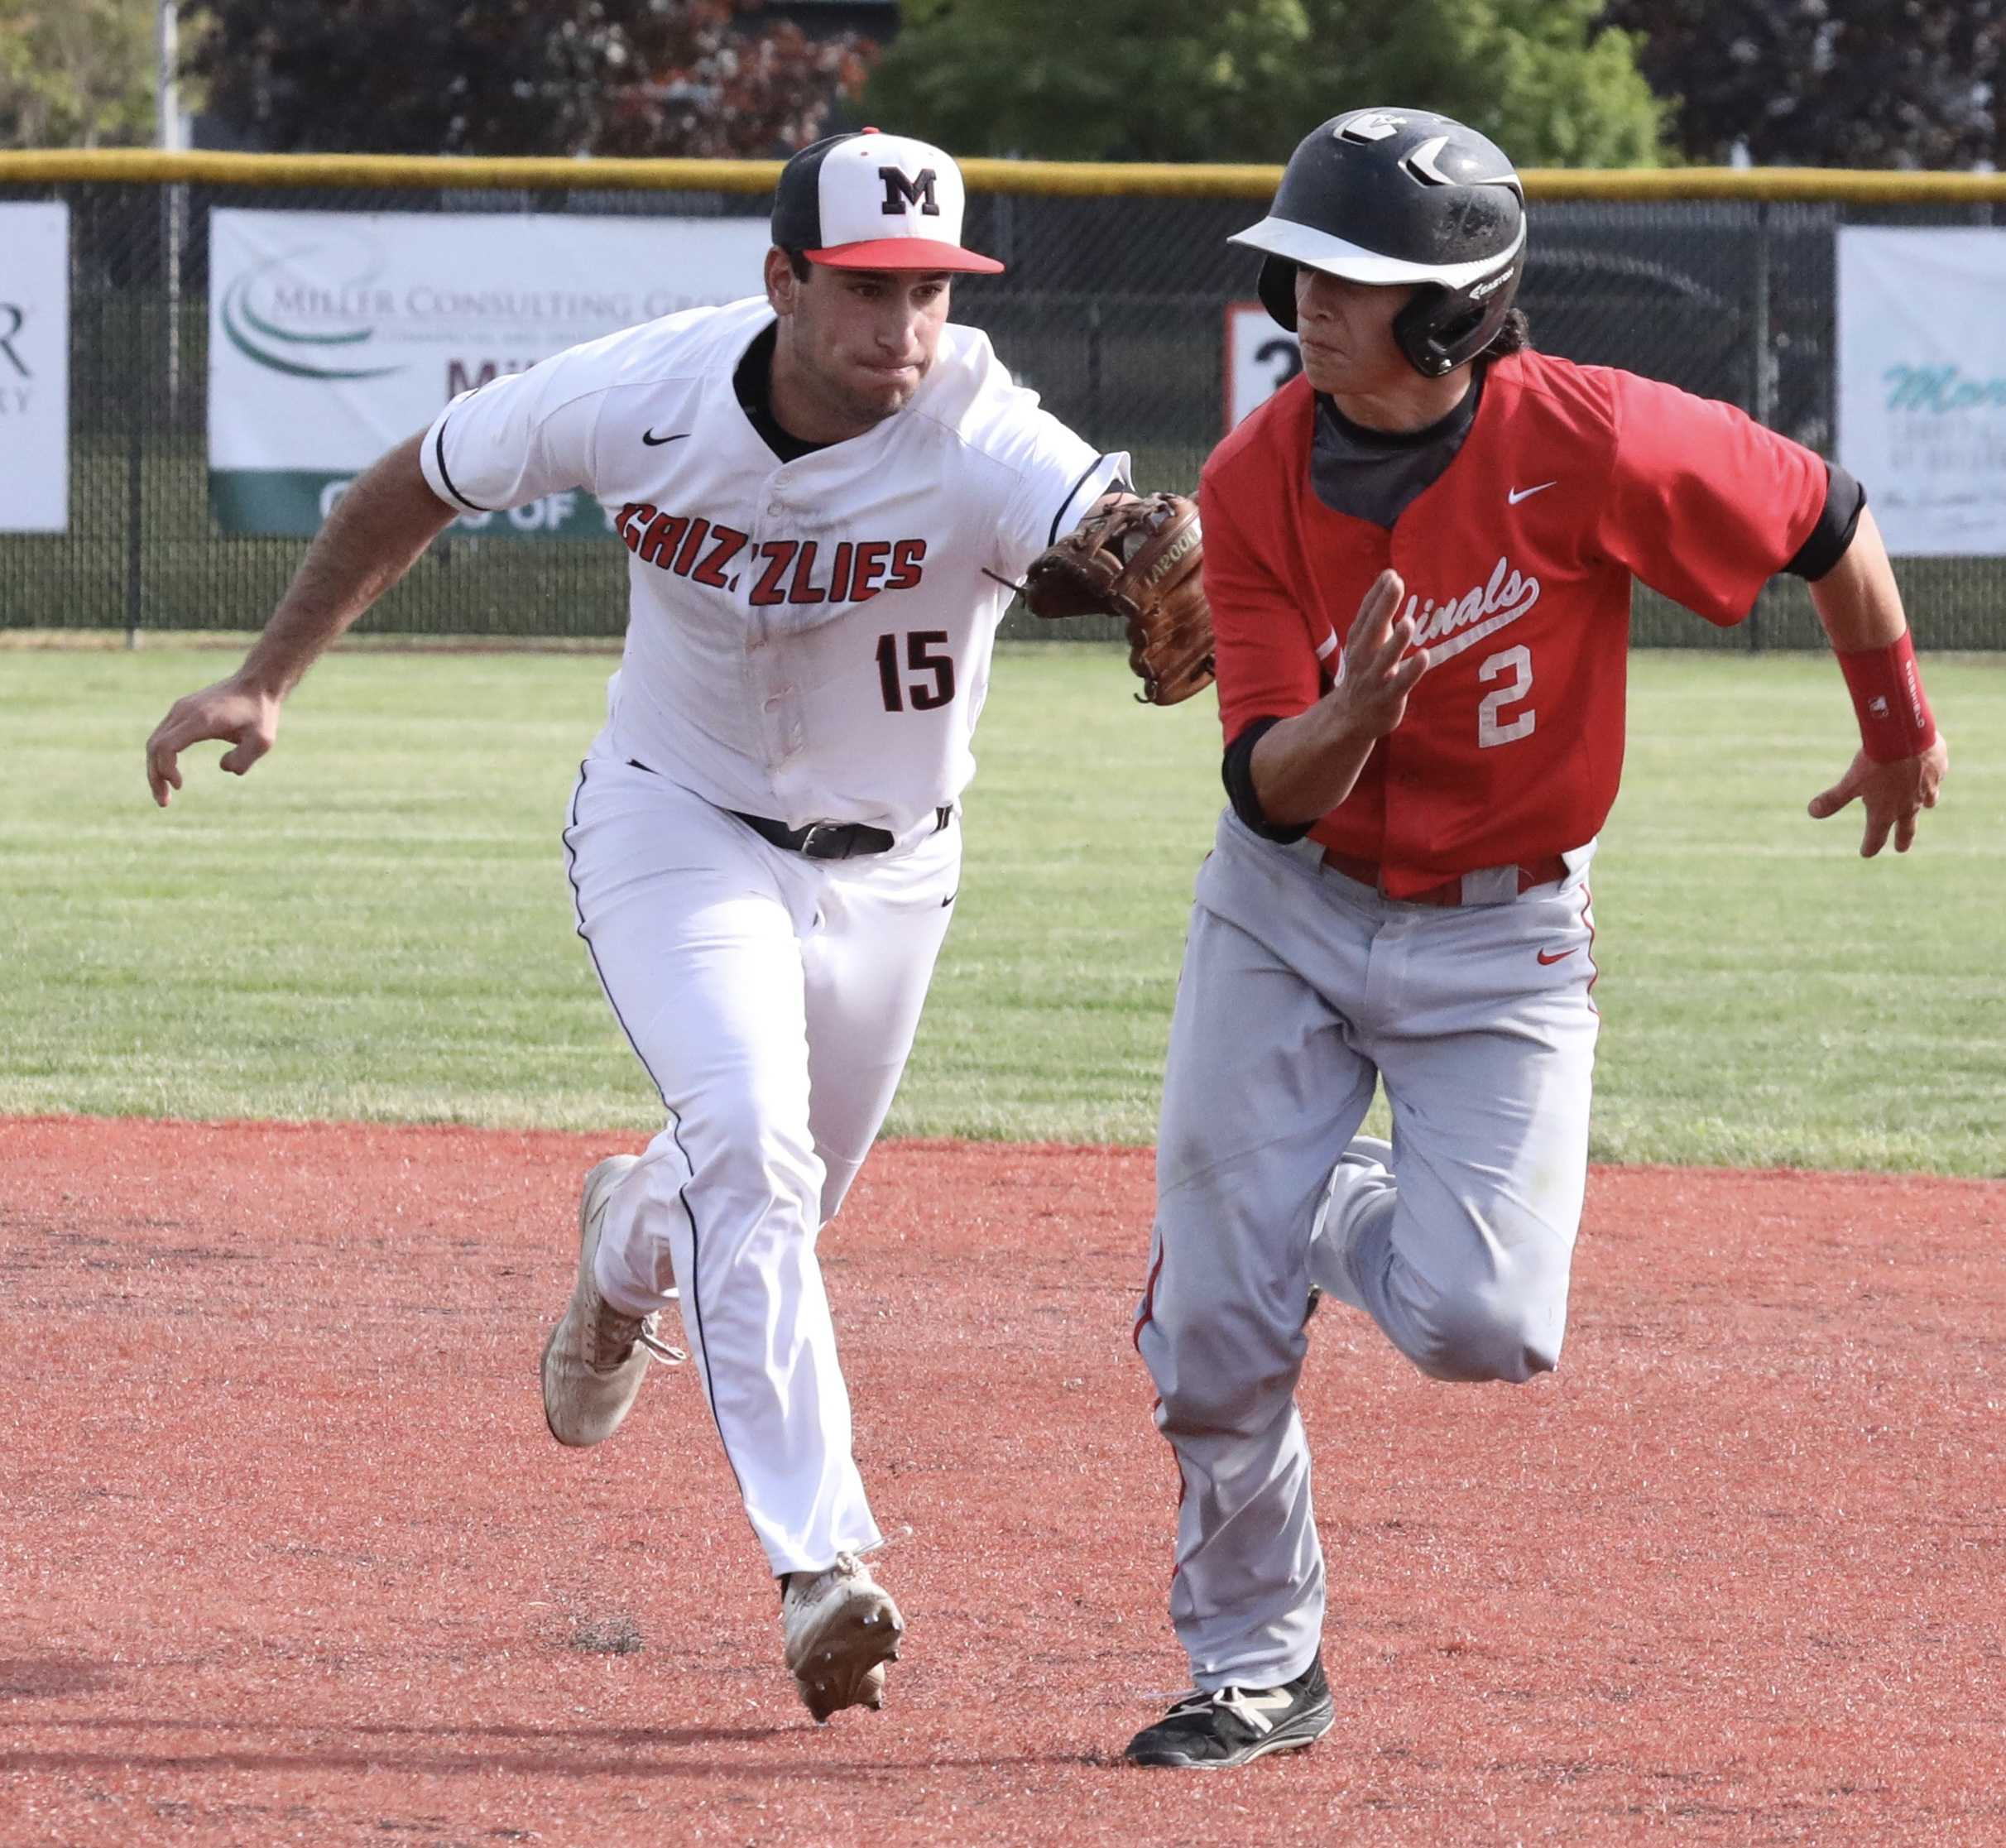 McMinnville second baseman Sam DuPuis tags out Lincoln's Kyle Gragnola on a successful pickoff play in the second inning.